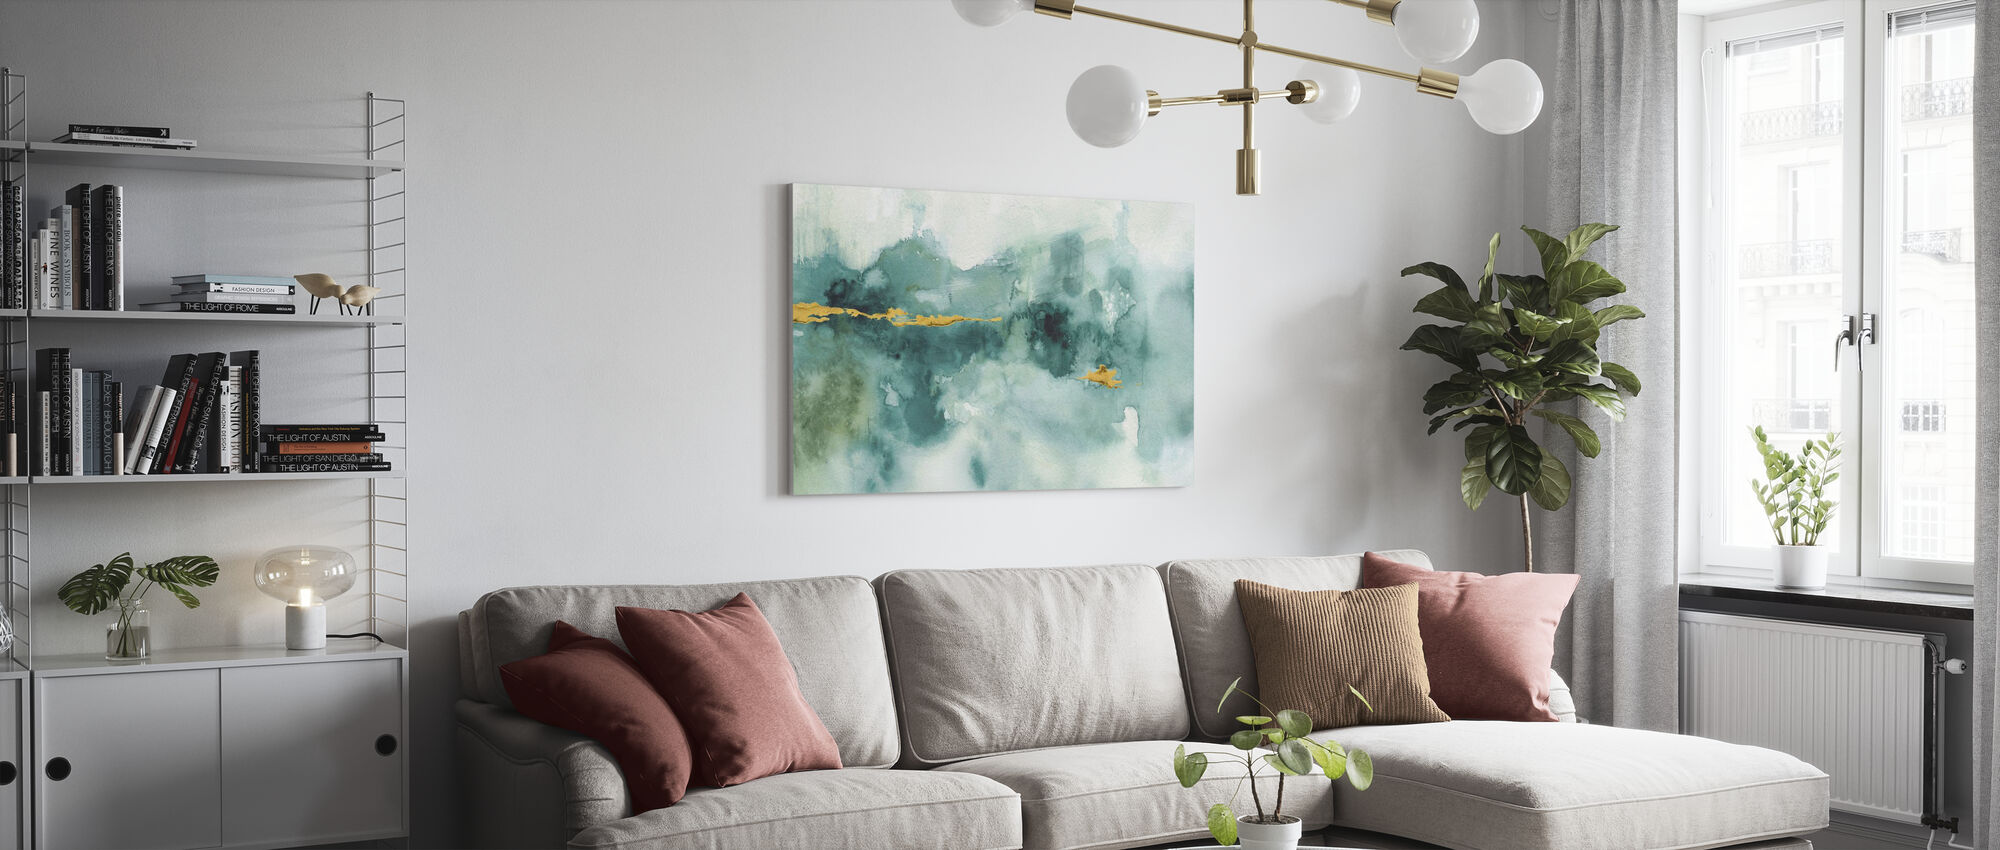 My Greenhouse Watercolor 3 - Canvas print - Living Room